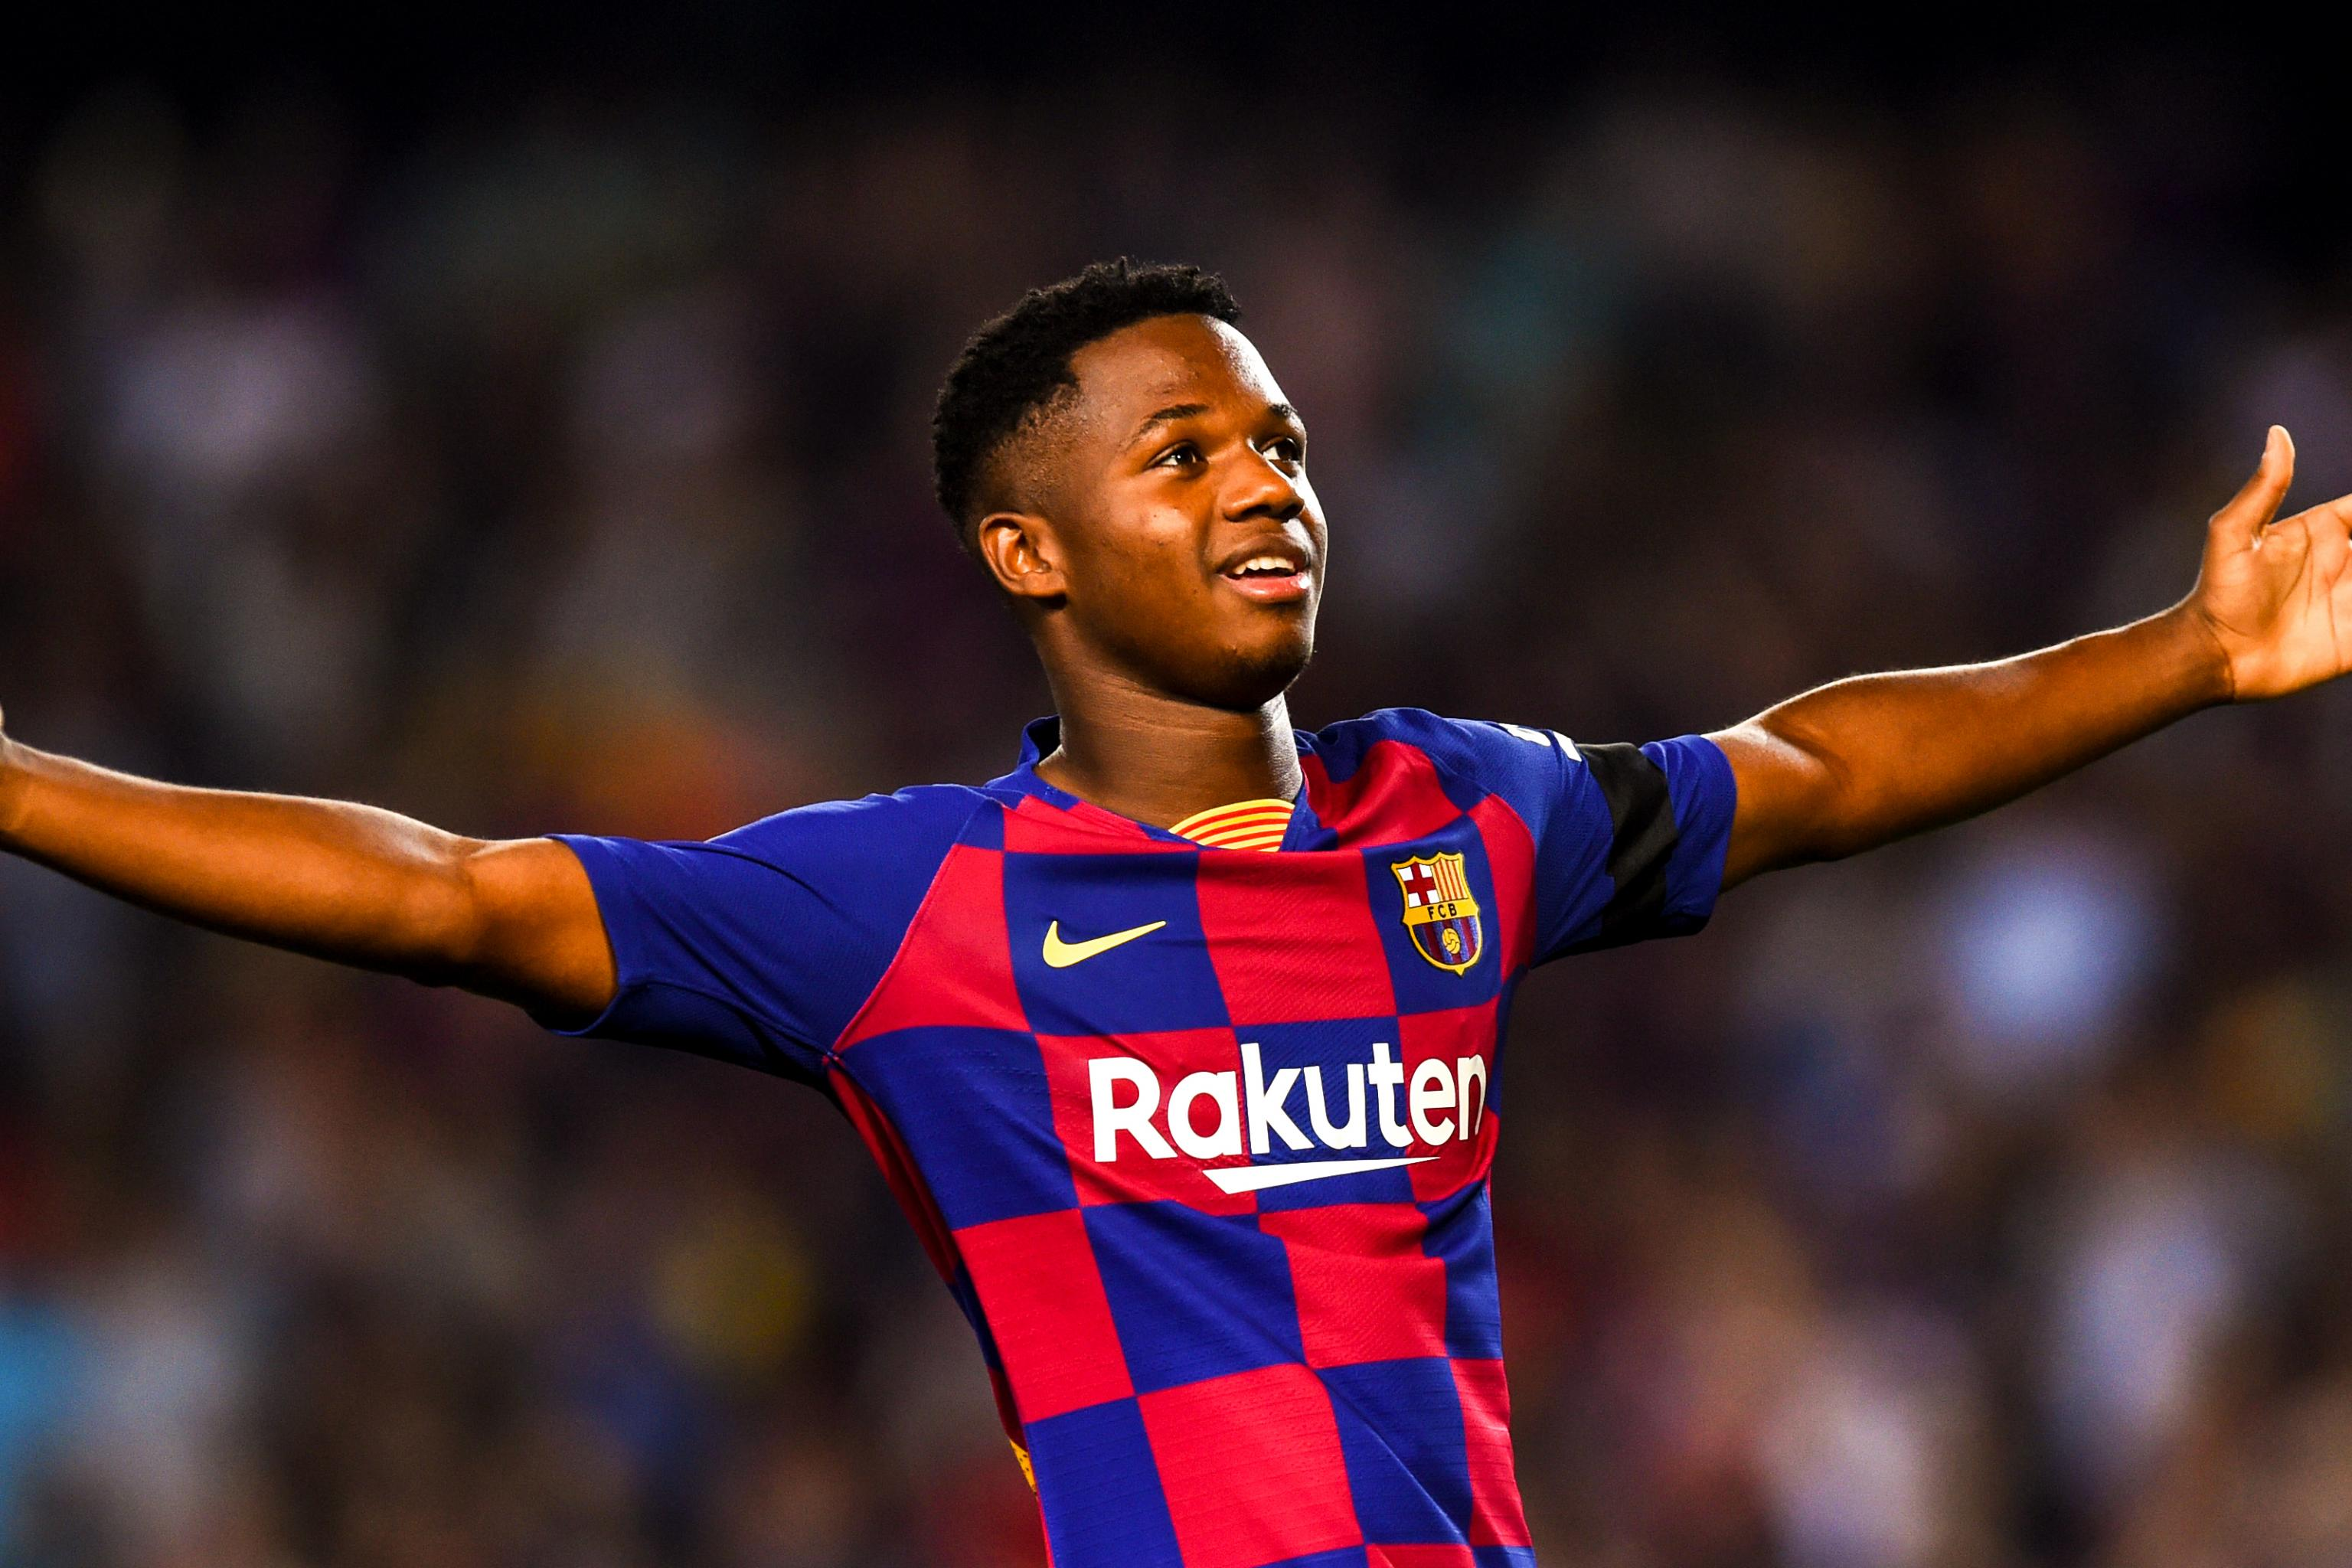 Ansu Fati The Barcelona Phenom Who Came From Nowhere Bleacher Report Latest News Videos And Highlights